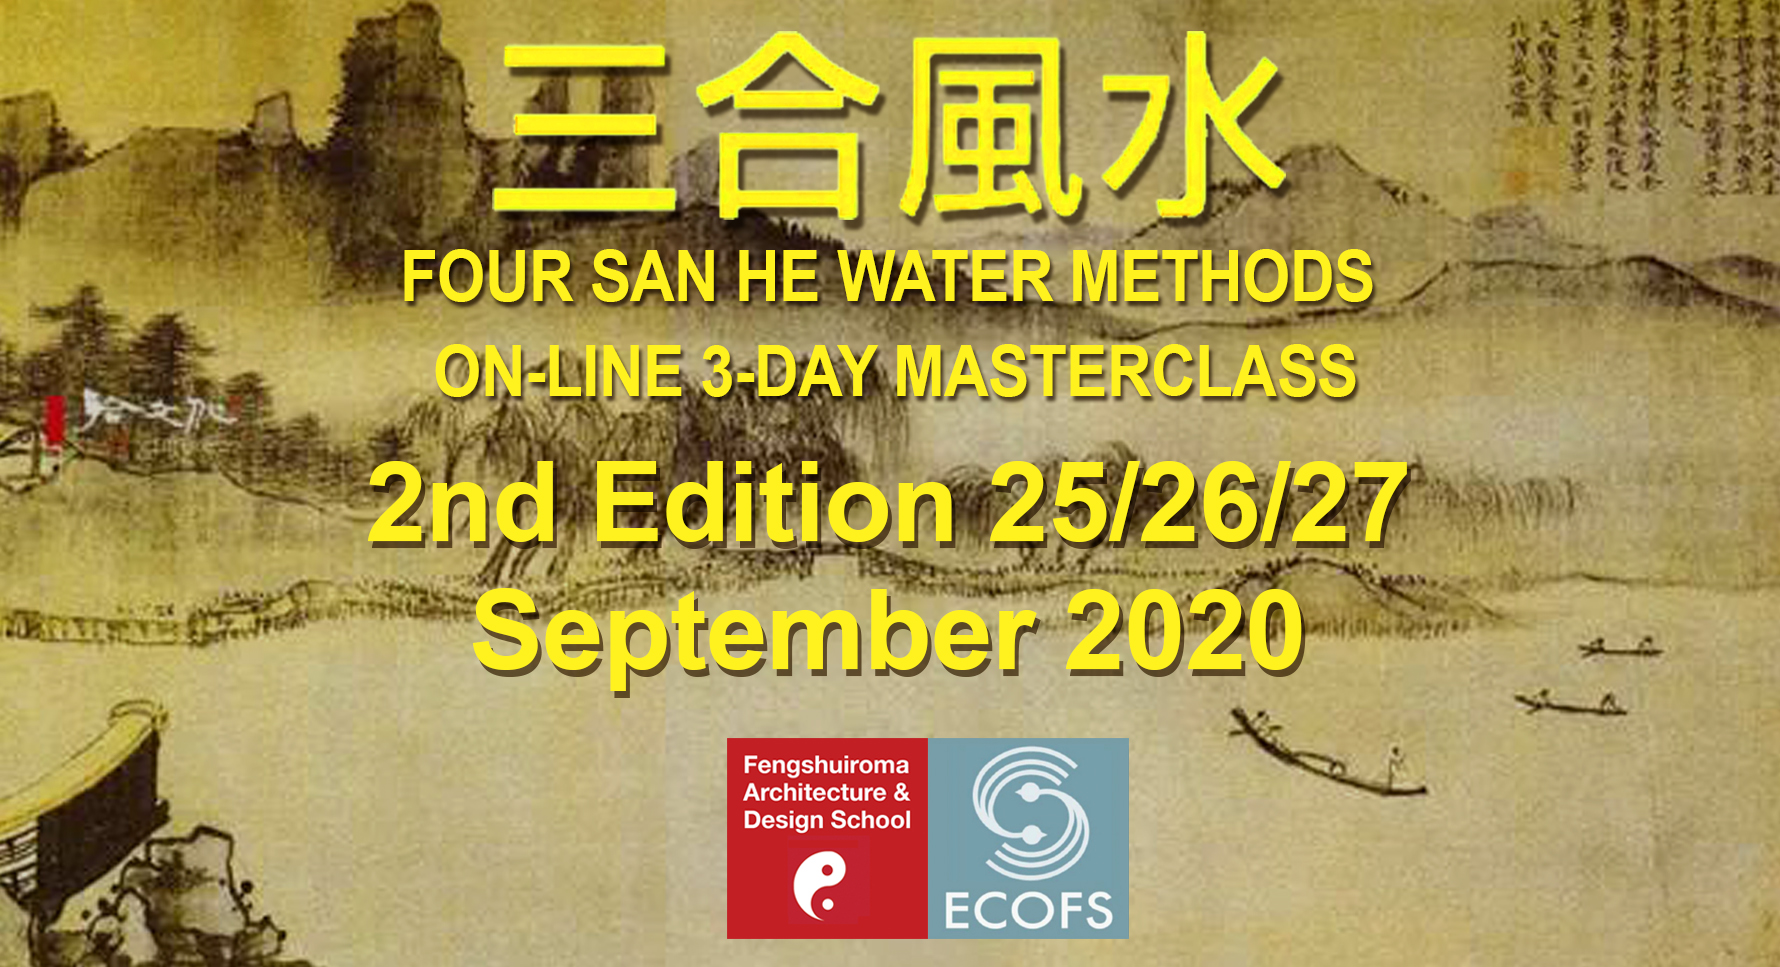 THE FOUR SAN HE WATER METHODS - INTERNATIONAL ONLINE MASTERCLASS